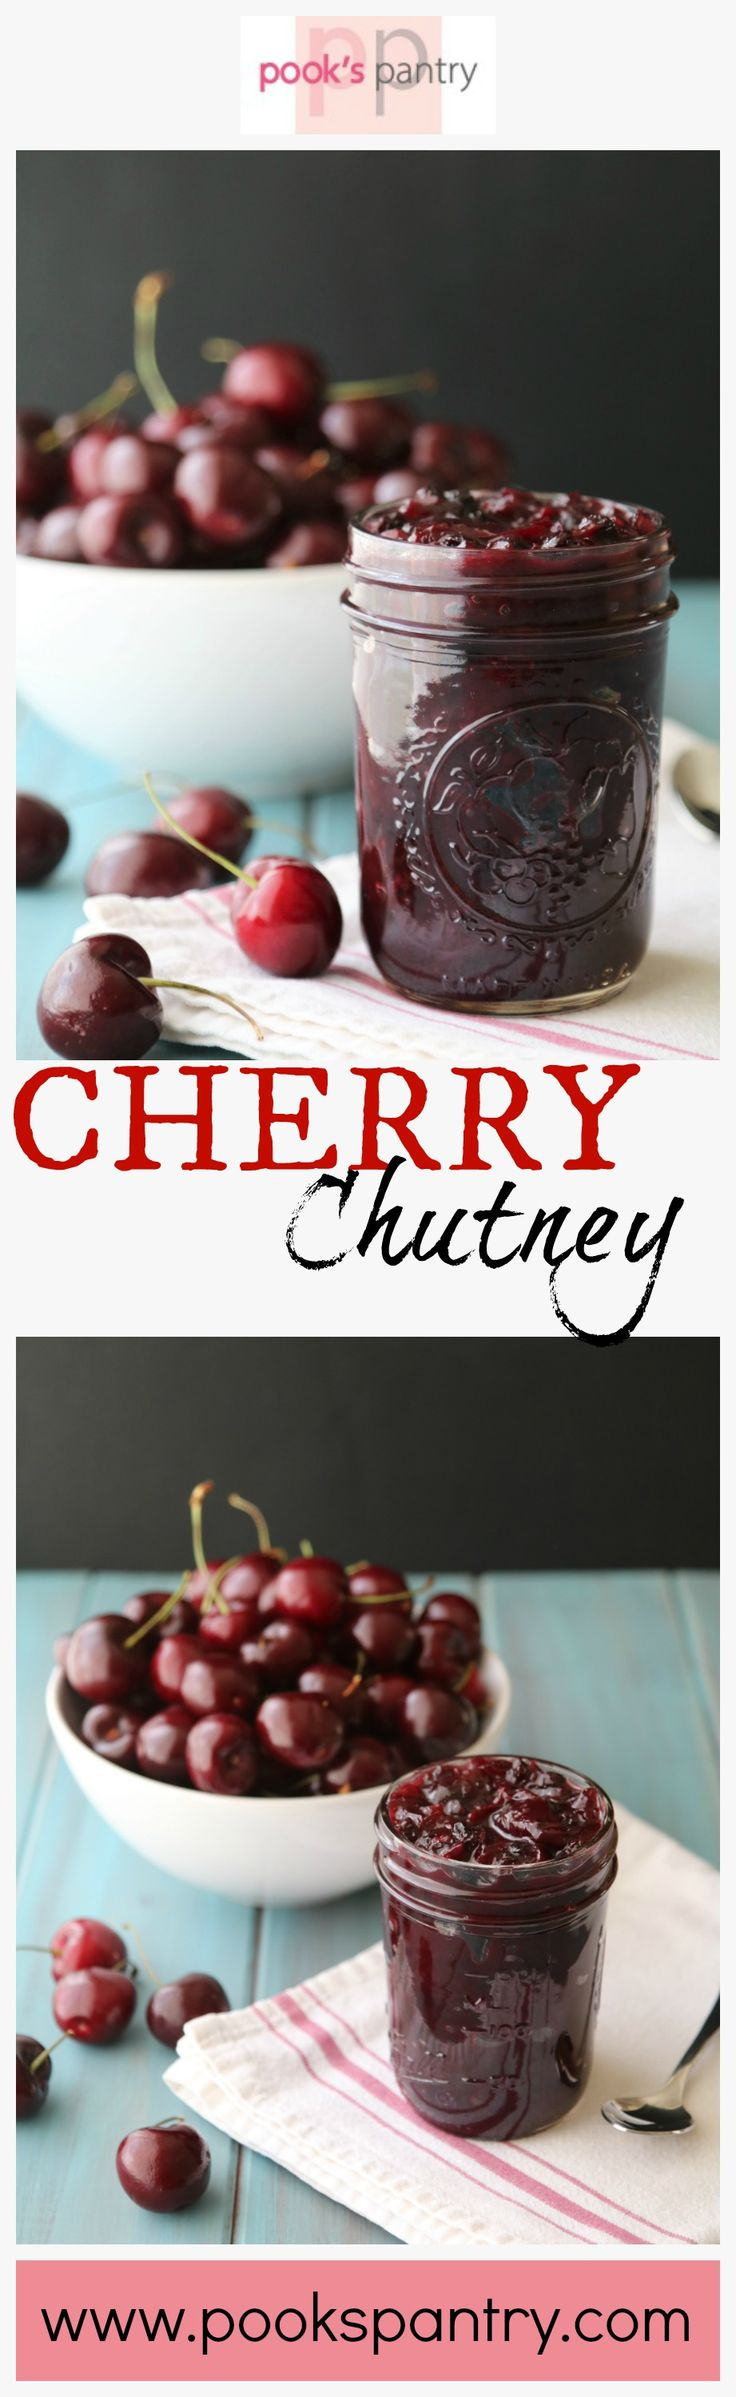 Sweet and savory cherry chutney is a perfect addition to grilled meats. It also makes a great addition to a charcuterie board or cheese board.